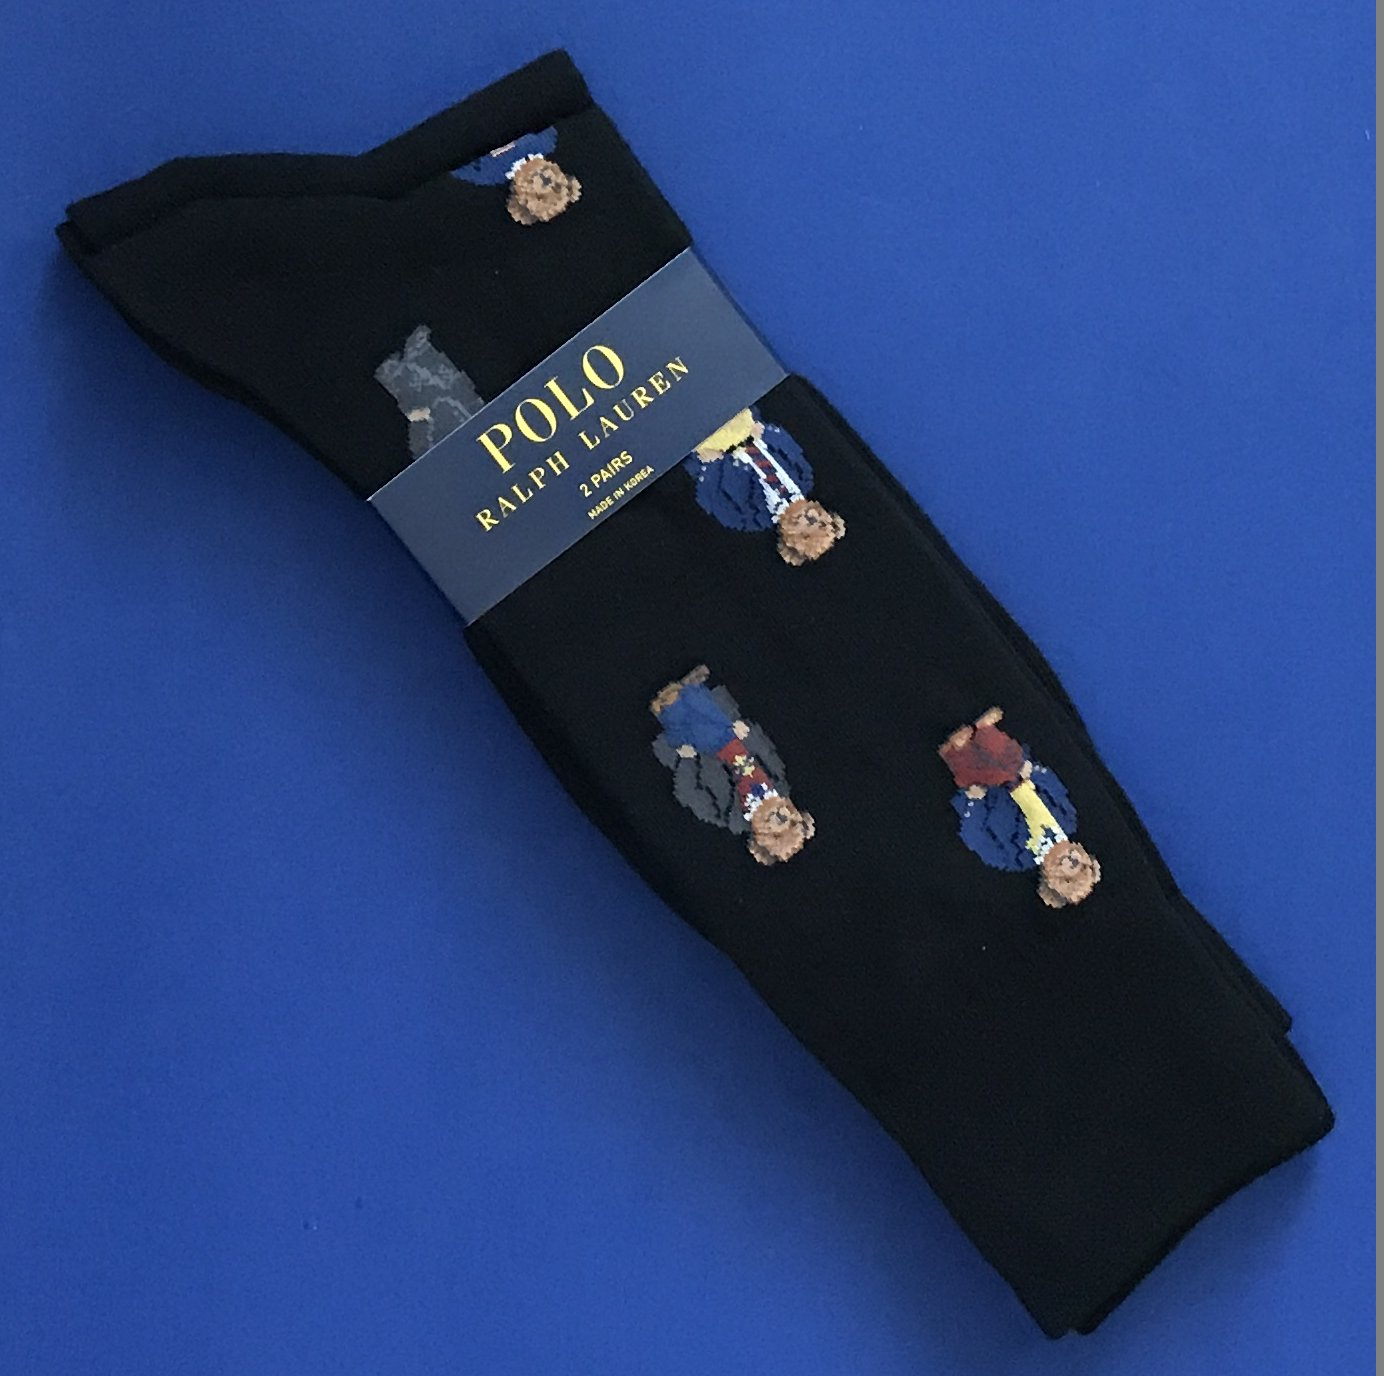 NWT Polo Ralph Lauren Black Bear Print Cotton Blend Knit Socks Two-Pack